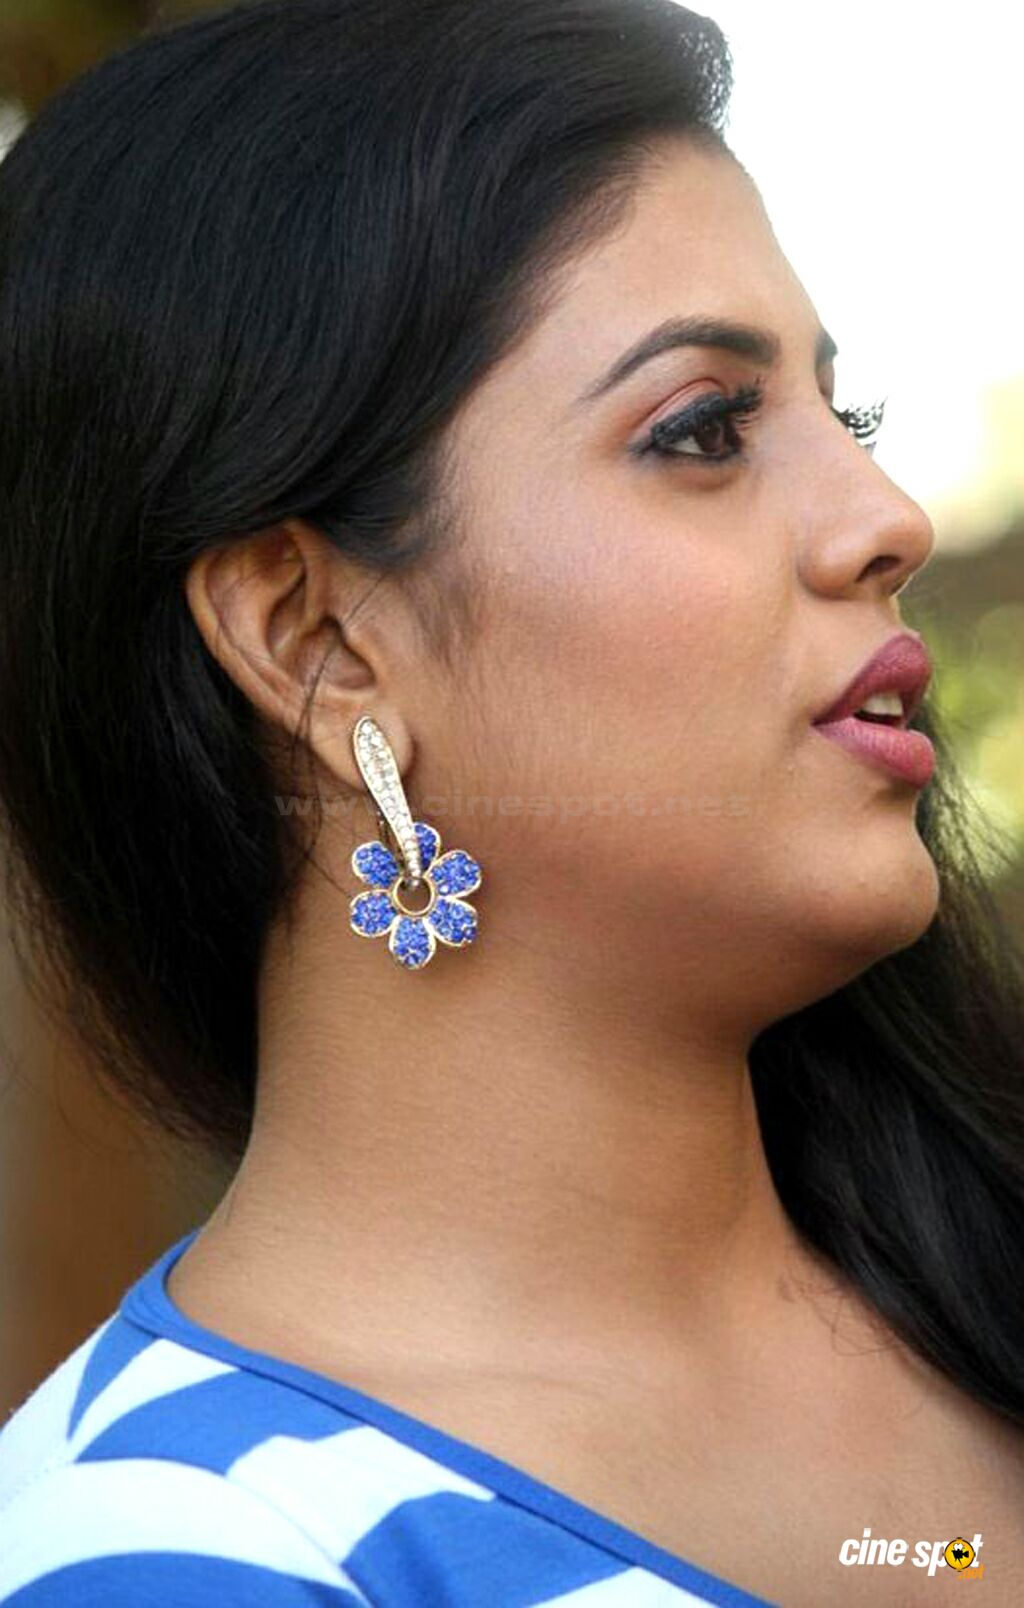 iniya facebookiniya wiki, iniya iru malargal facebook, iniya iru maralgal, indian actress photos, iniya iru malargal 183, iniya iru malargal 189, iniya iru malargal 184, iniya iru malargal, iniya iru malargal tubetamil, iniya iru malargal tamil, iniya pongal nalvazhthukkal tamil, iniya tamil osai, iniya navel, iniya hot photos, iniya pirantha naal vaazhthukkal, iniya facebook, iniya photos, iniya puthandu nalvazhthukkal, indian actress, iniya pon nilave song lyrics